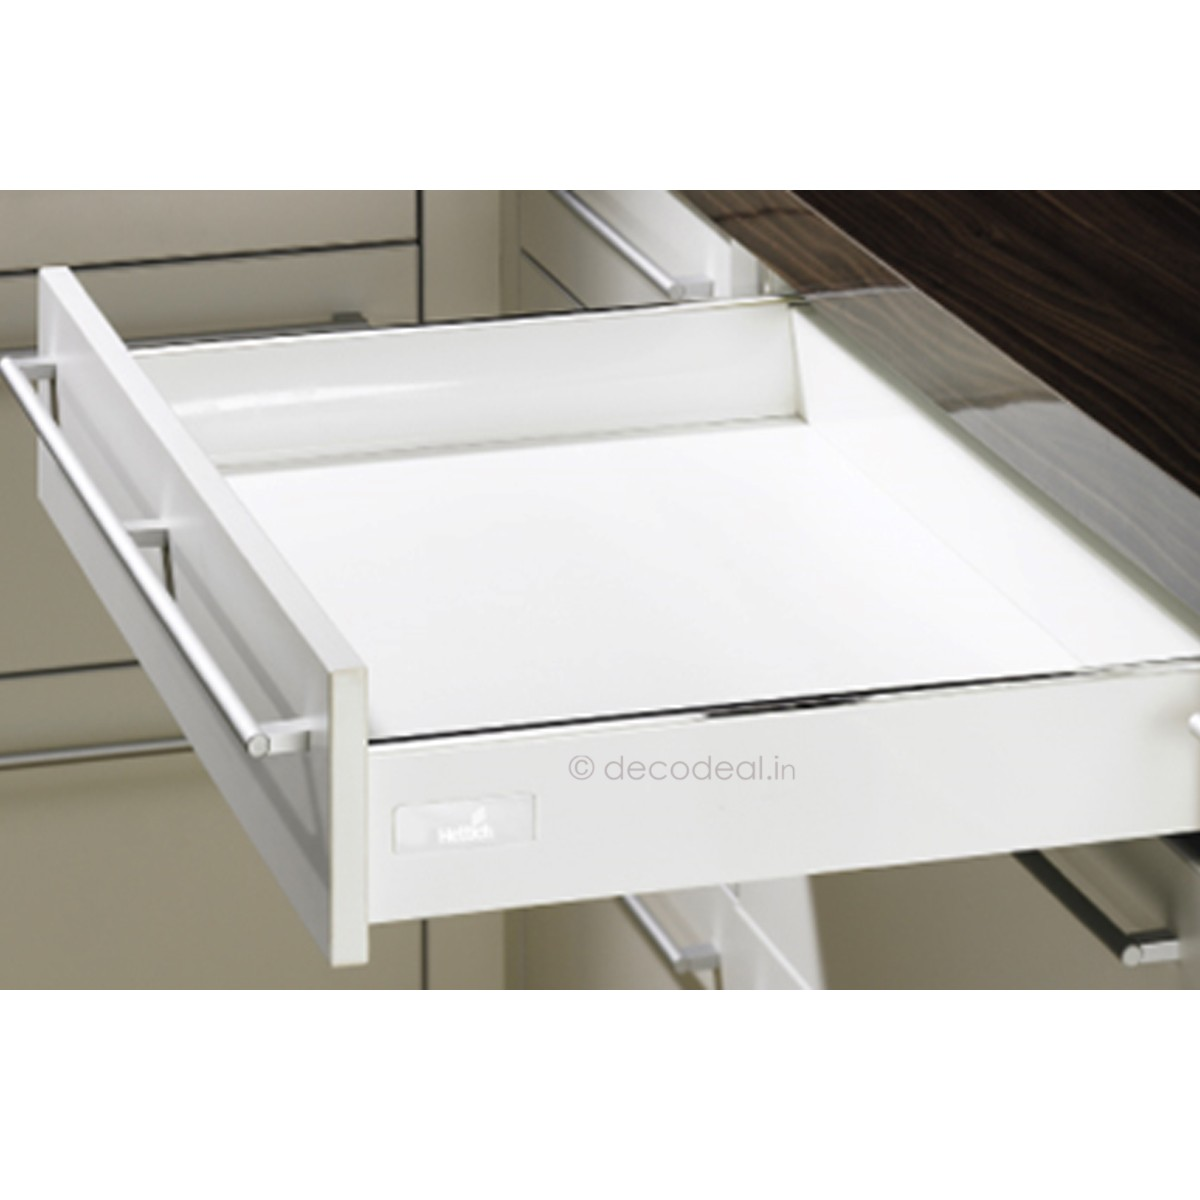 INNOTECH WHITE FULL EXTN, SILENT, DRAWER SYSTEM INNOTECH - DRAWER, HEIGHT  70 / 144 MM, WHITE FINISH, HETTICH - Pullouts - Storage Units - Kitchen